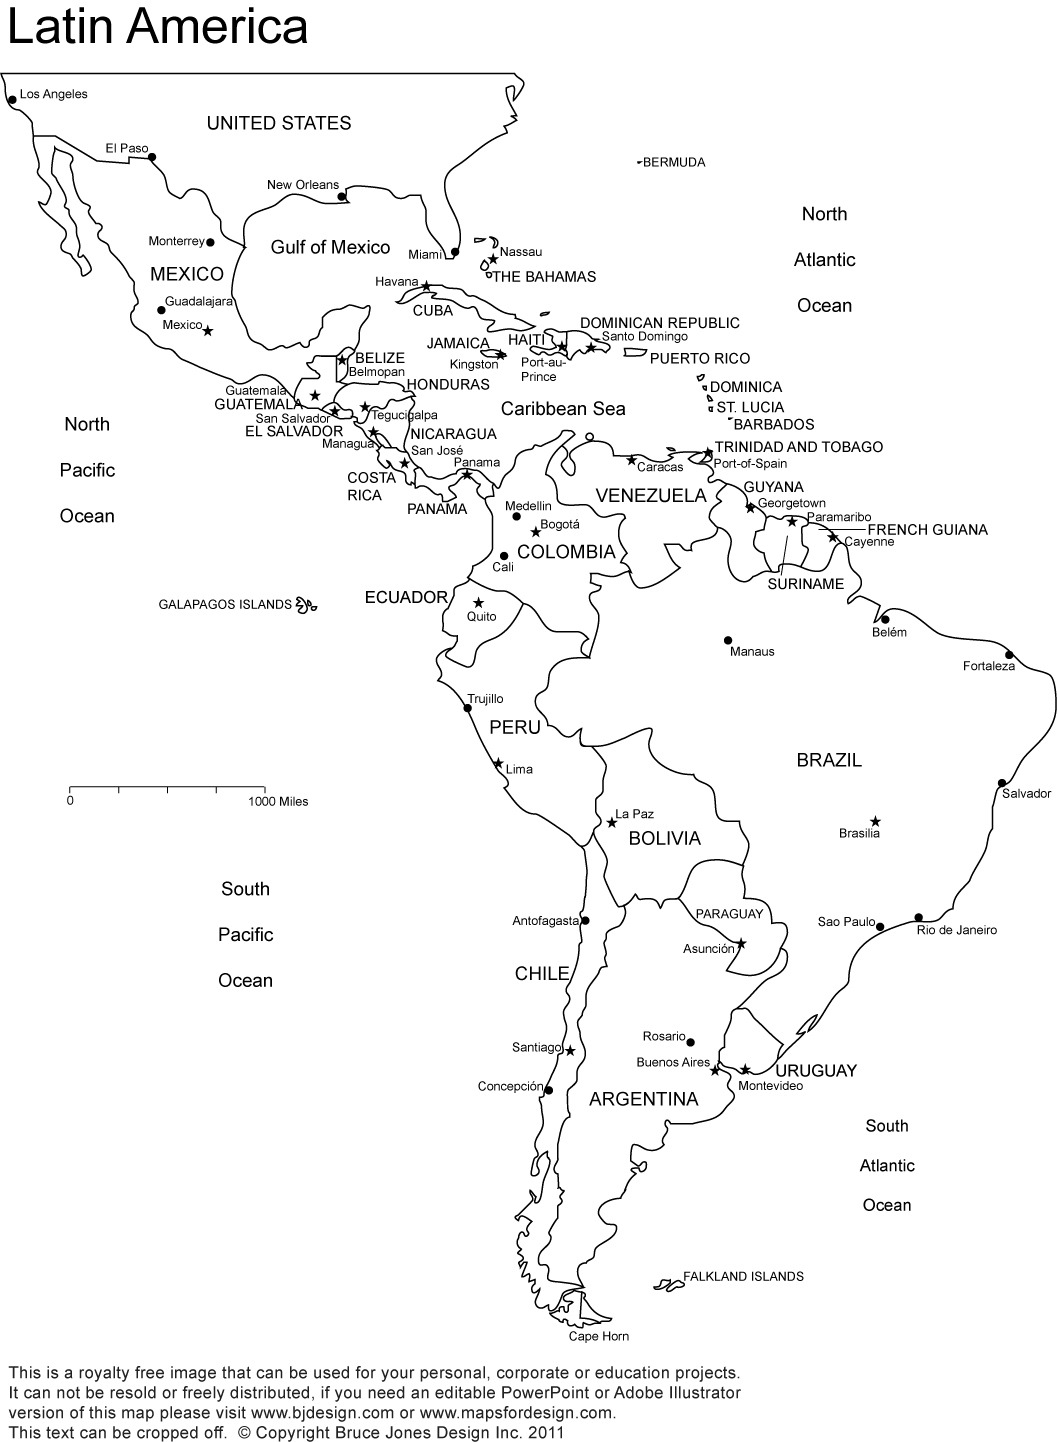 South America Map And Review Worksheet Answers South America Word - Printable Puzzle South America